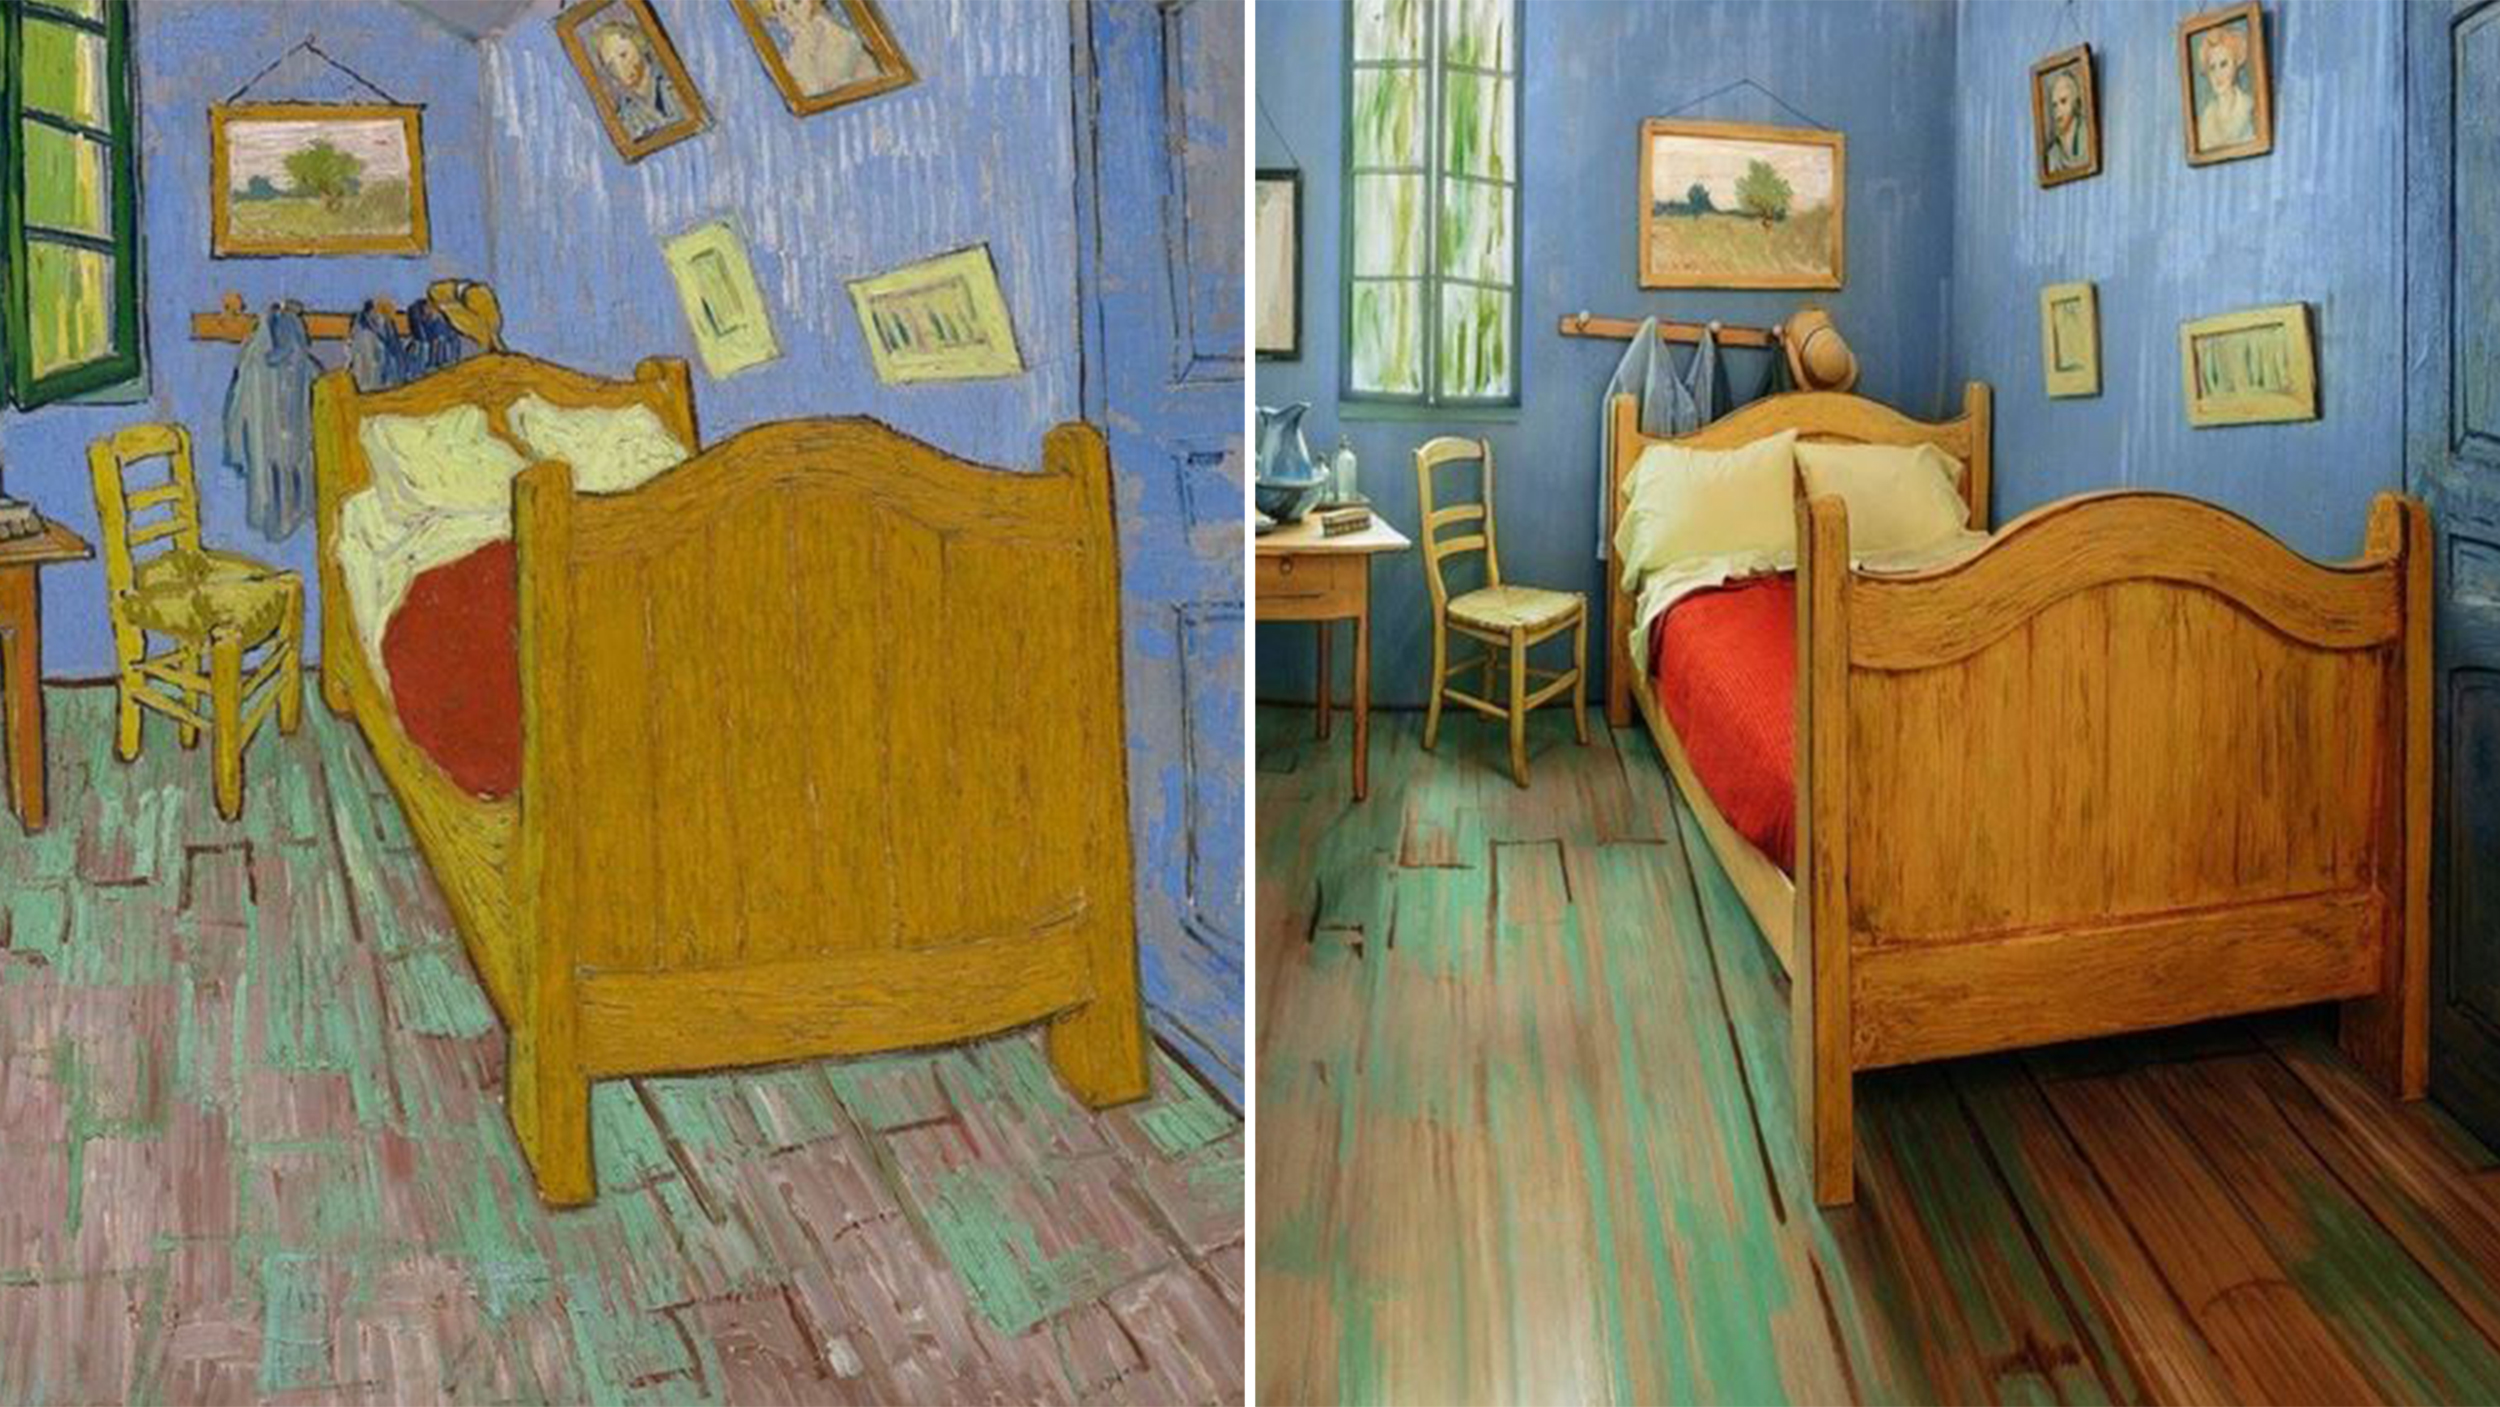 Van Gogh has also been in the headlines lately thanks to a real-life version of his 1889 painting <i>The Bedroom</i>. The Art Institute of Chicago recently created a real-life version of the post-impressionist painting and is allowing fans to stay in the Airbnb room for only $10 a night. Complete with surreal features and identical furniture, the room enables art lovers to fully immerse themselves in the famous painting for the first time. Although the room is booked well into the next few years, it's OK to dream.